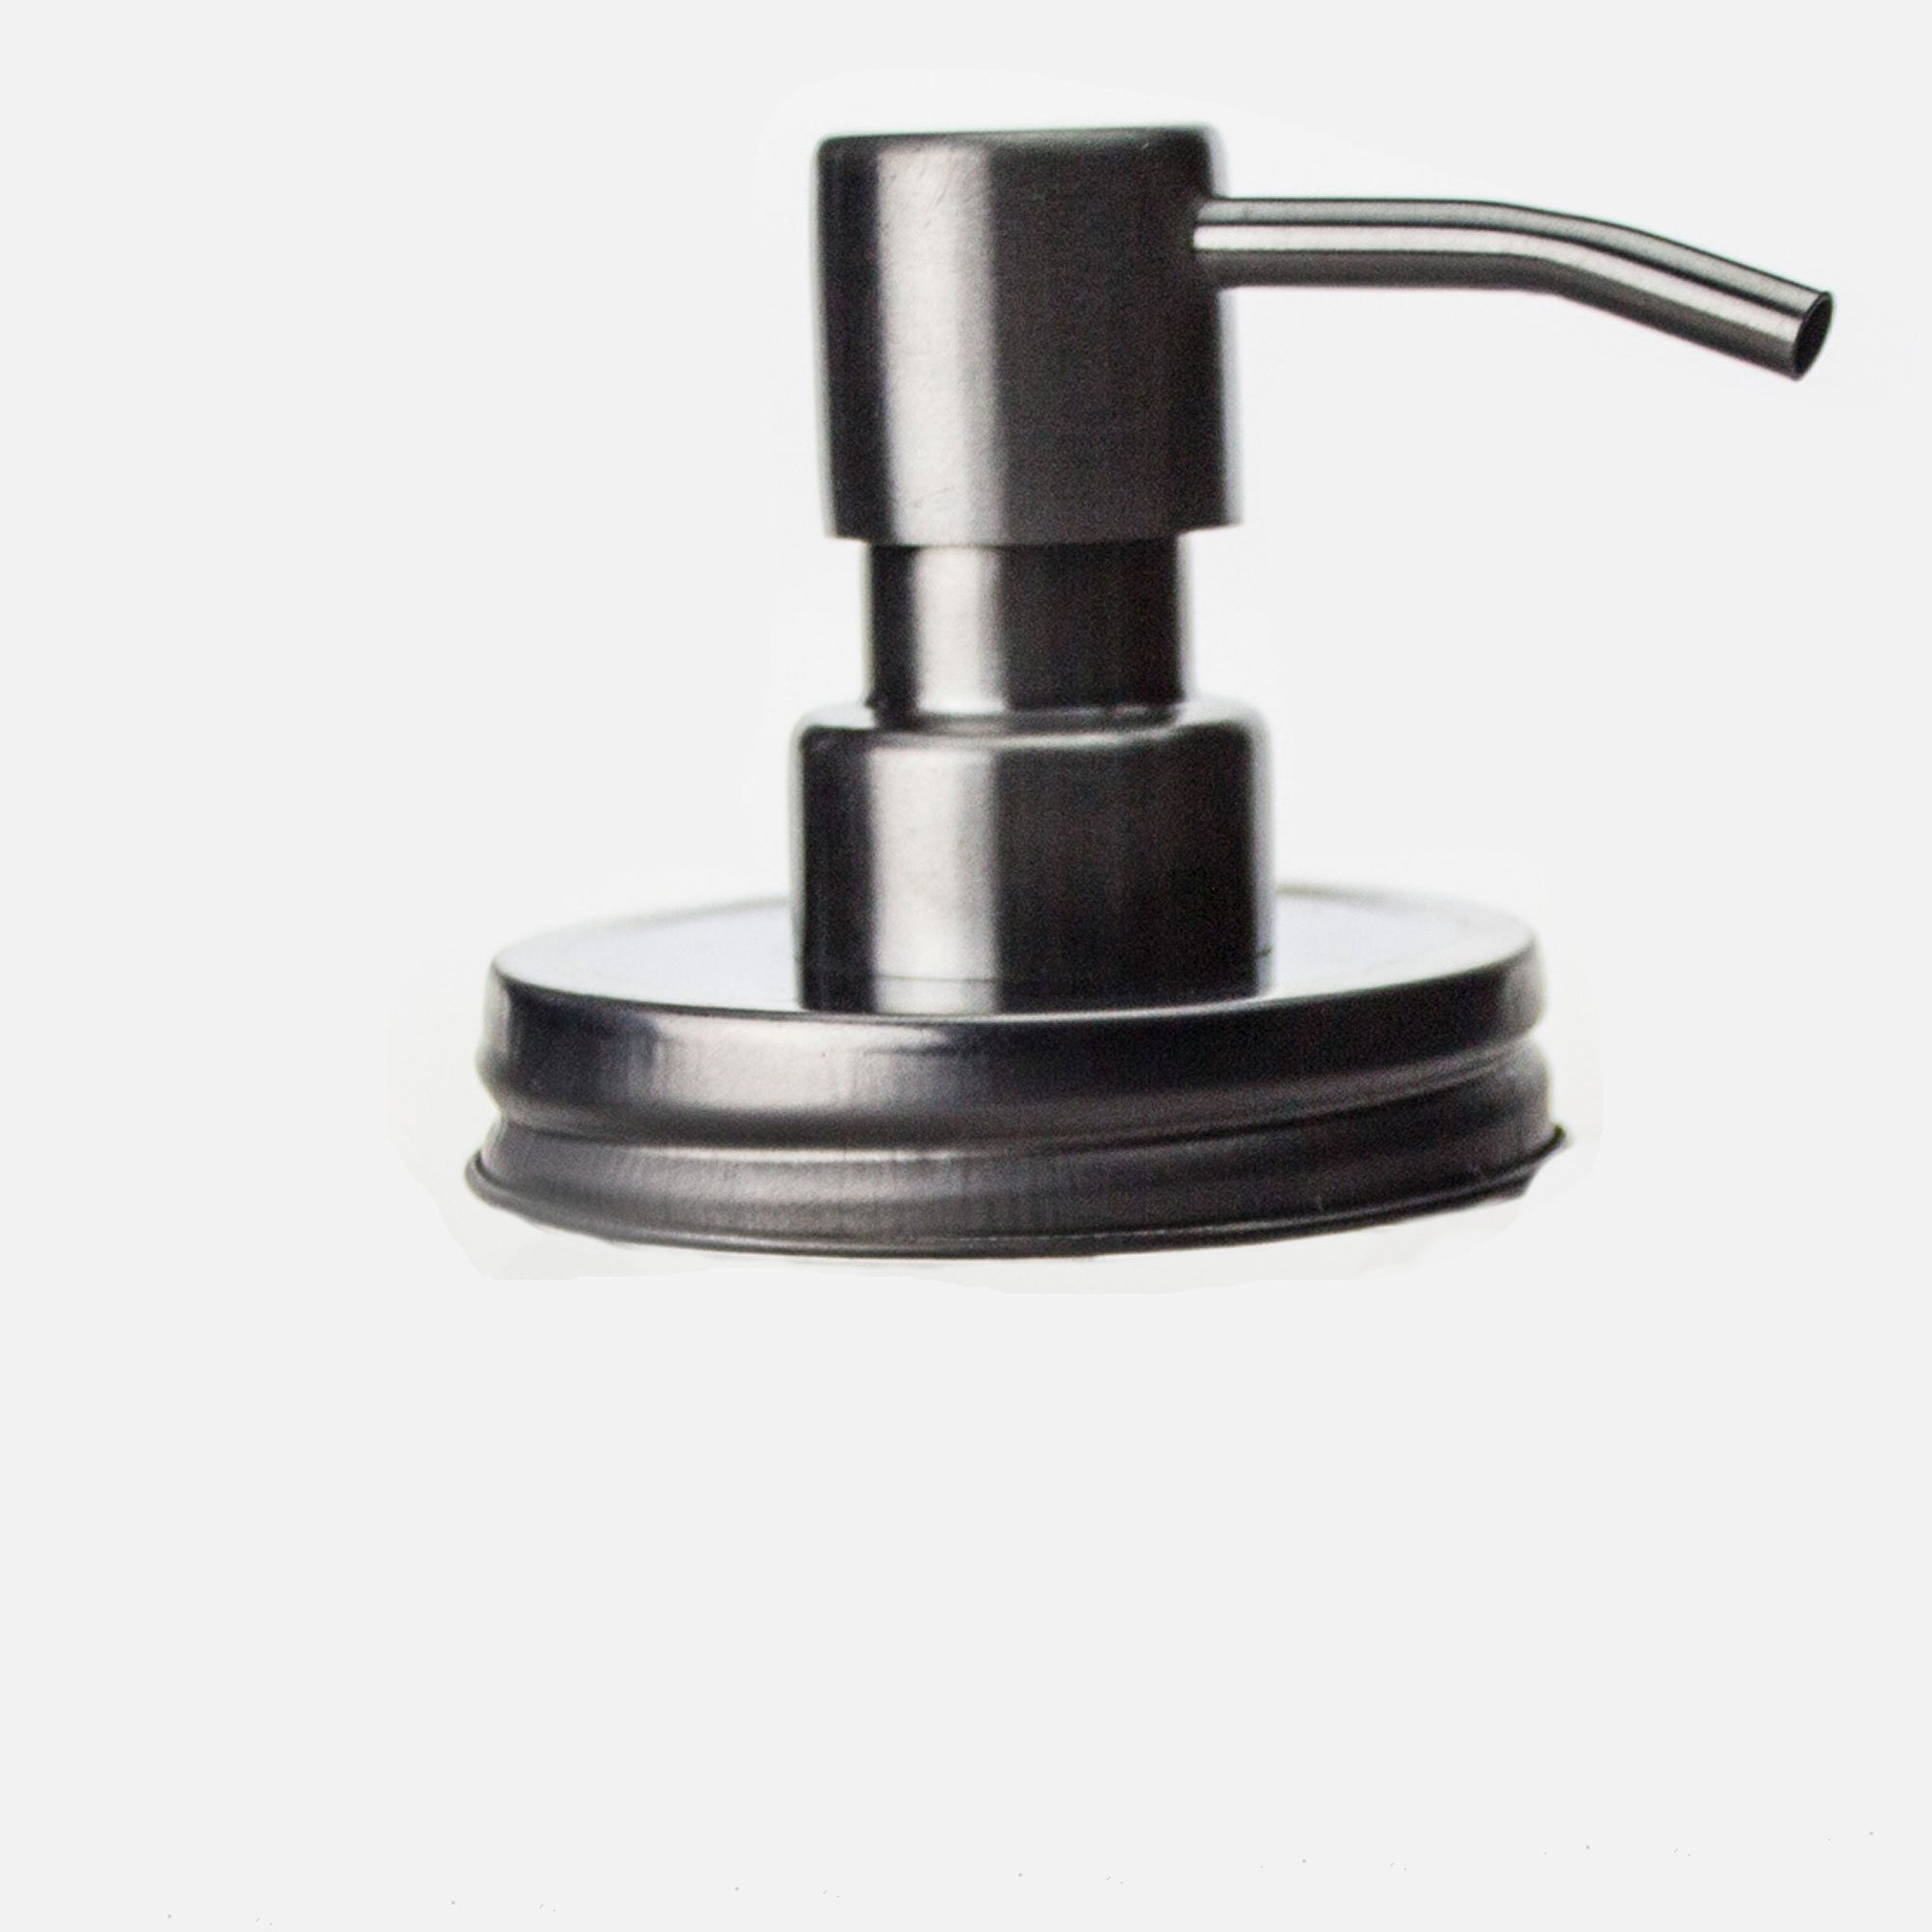 6a0089284ad7 1 x Soap Dispenser Lid With Stainless Steel Pump JAR NOT INCLUDED